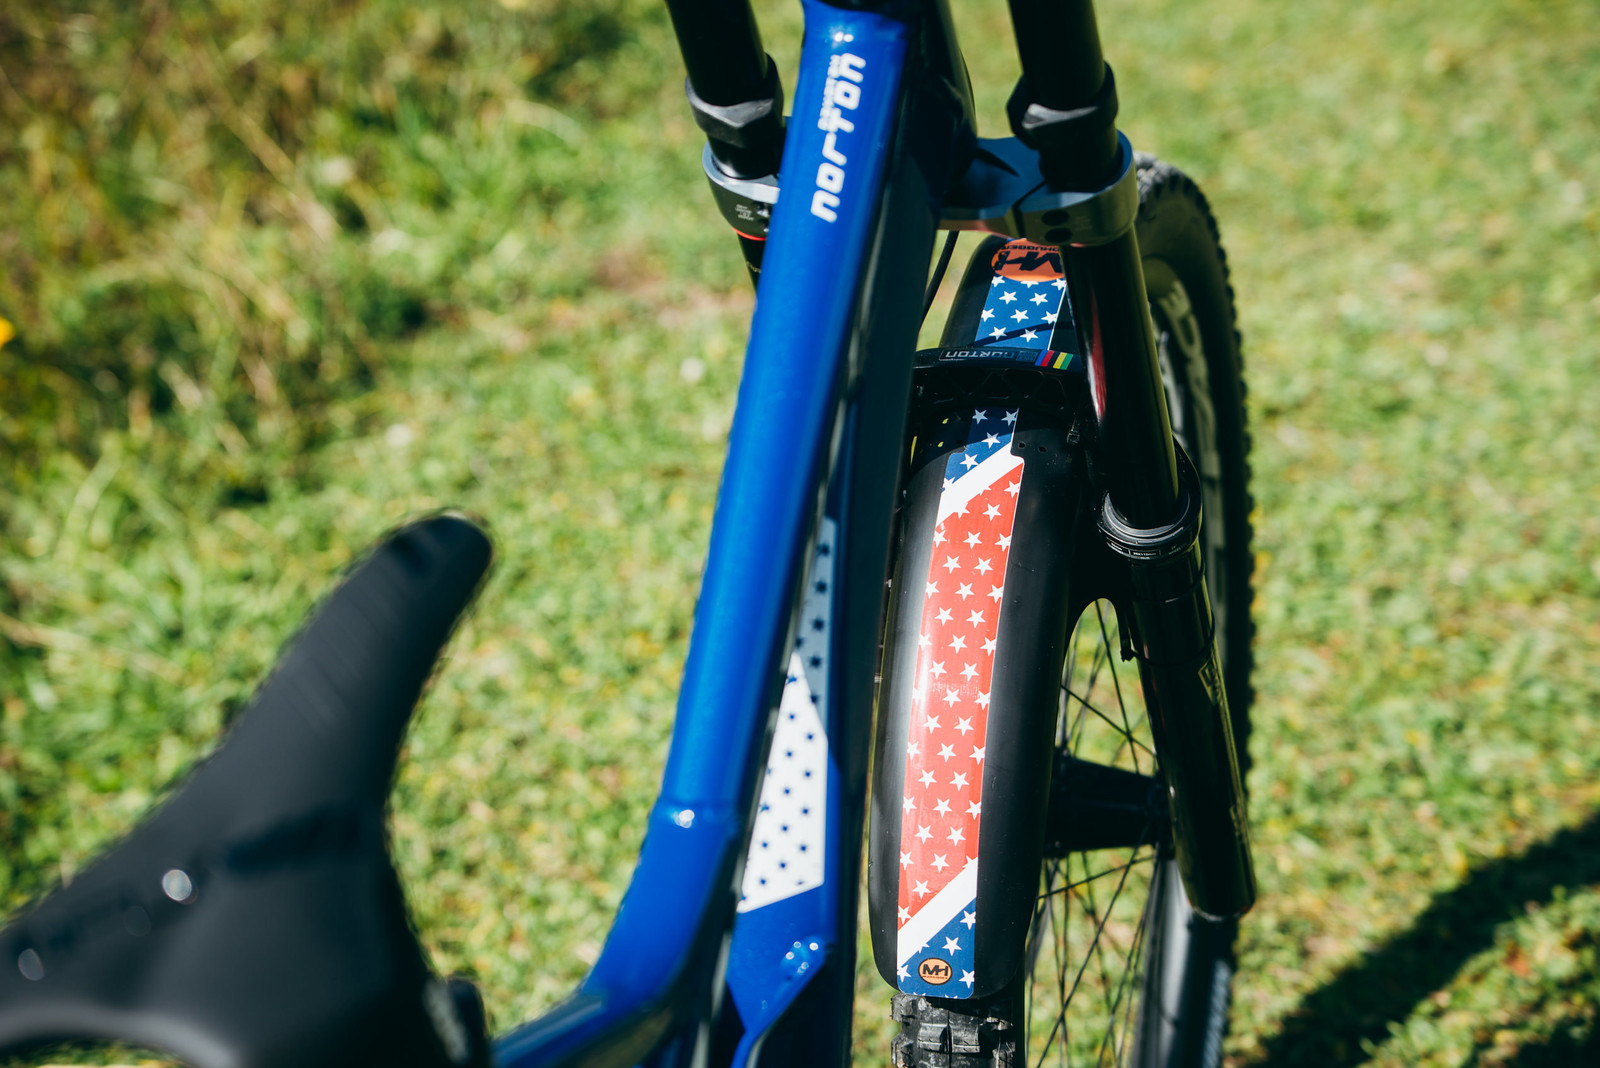 Custom Mudhugger Fender - WORLD CHAMPS BIKES - Unior/Devinci Factory Racing - Mountain Biking Pictures - Vital MTB